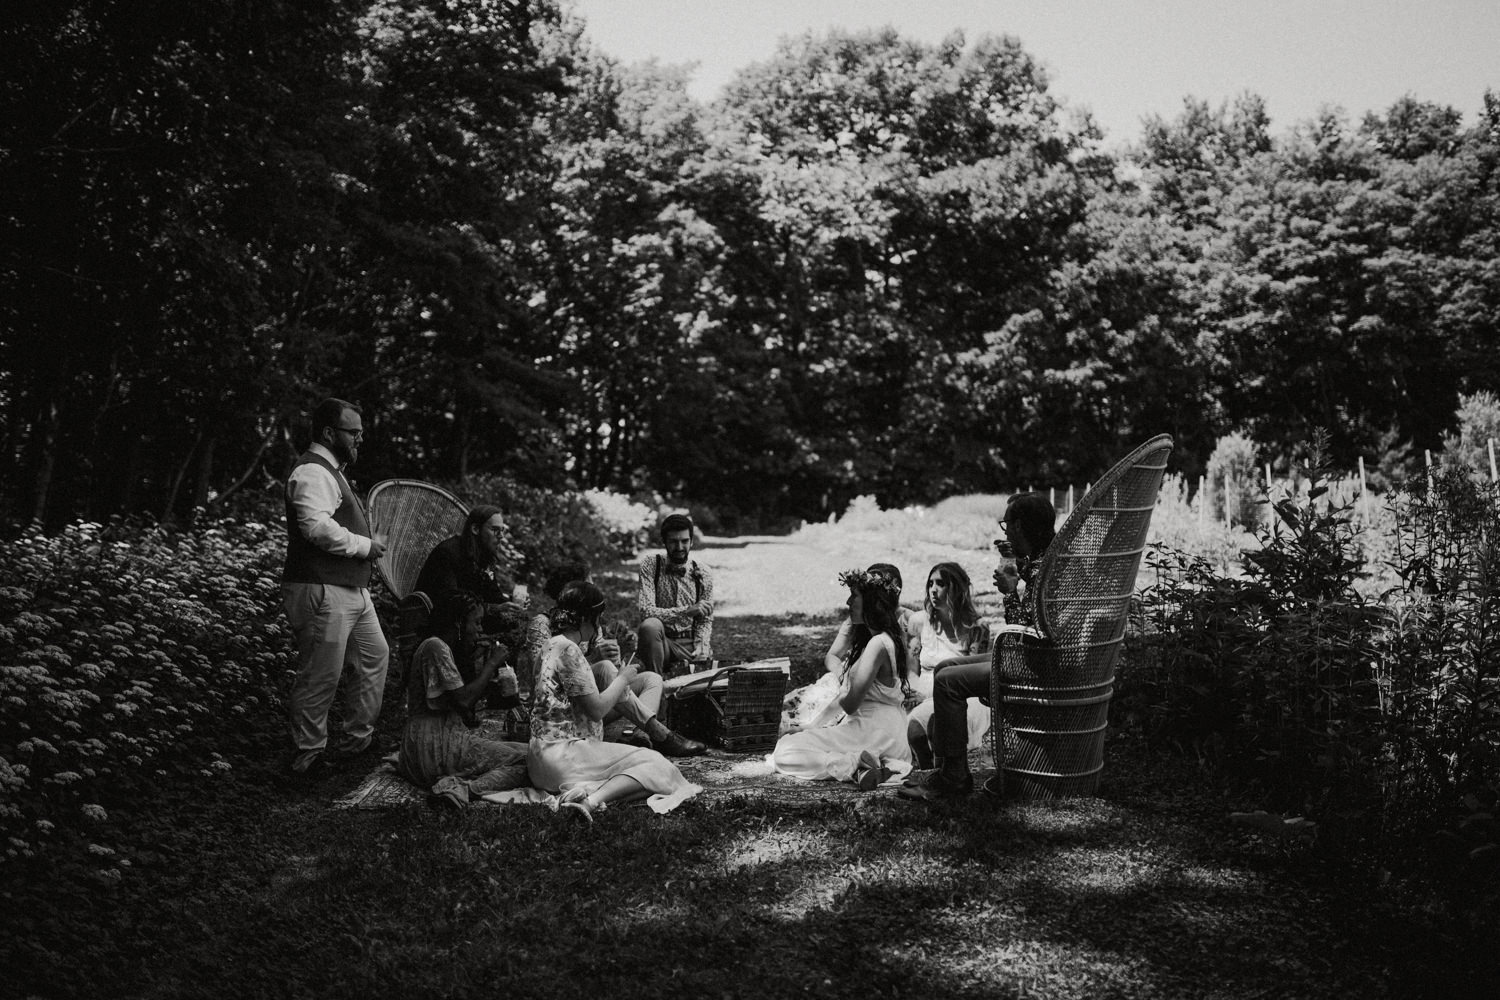 180629 Mariage Camille Jean Samuel 03 First look et Pic Nic Basse res Domaine Cataraqui Quebec Wedding Mariage  (125 of 148).jpg